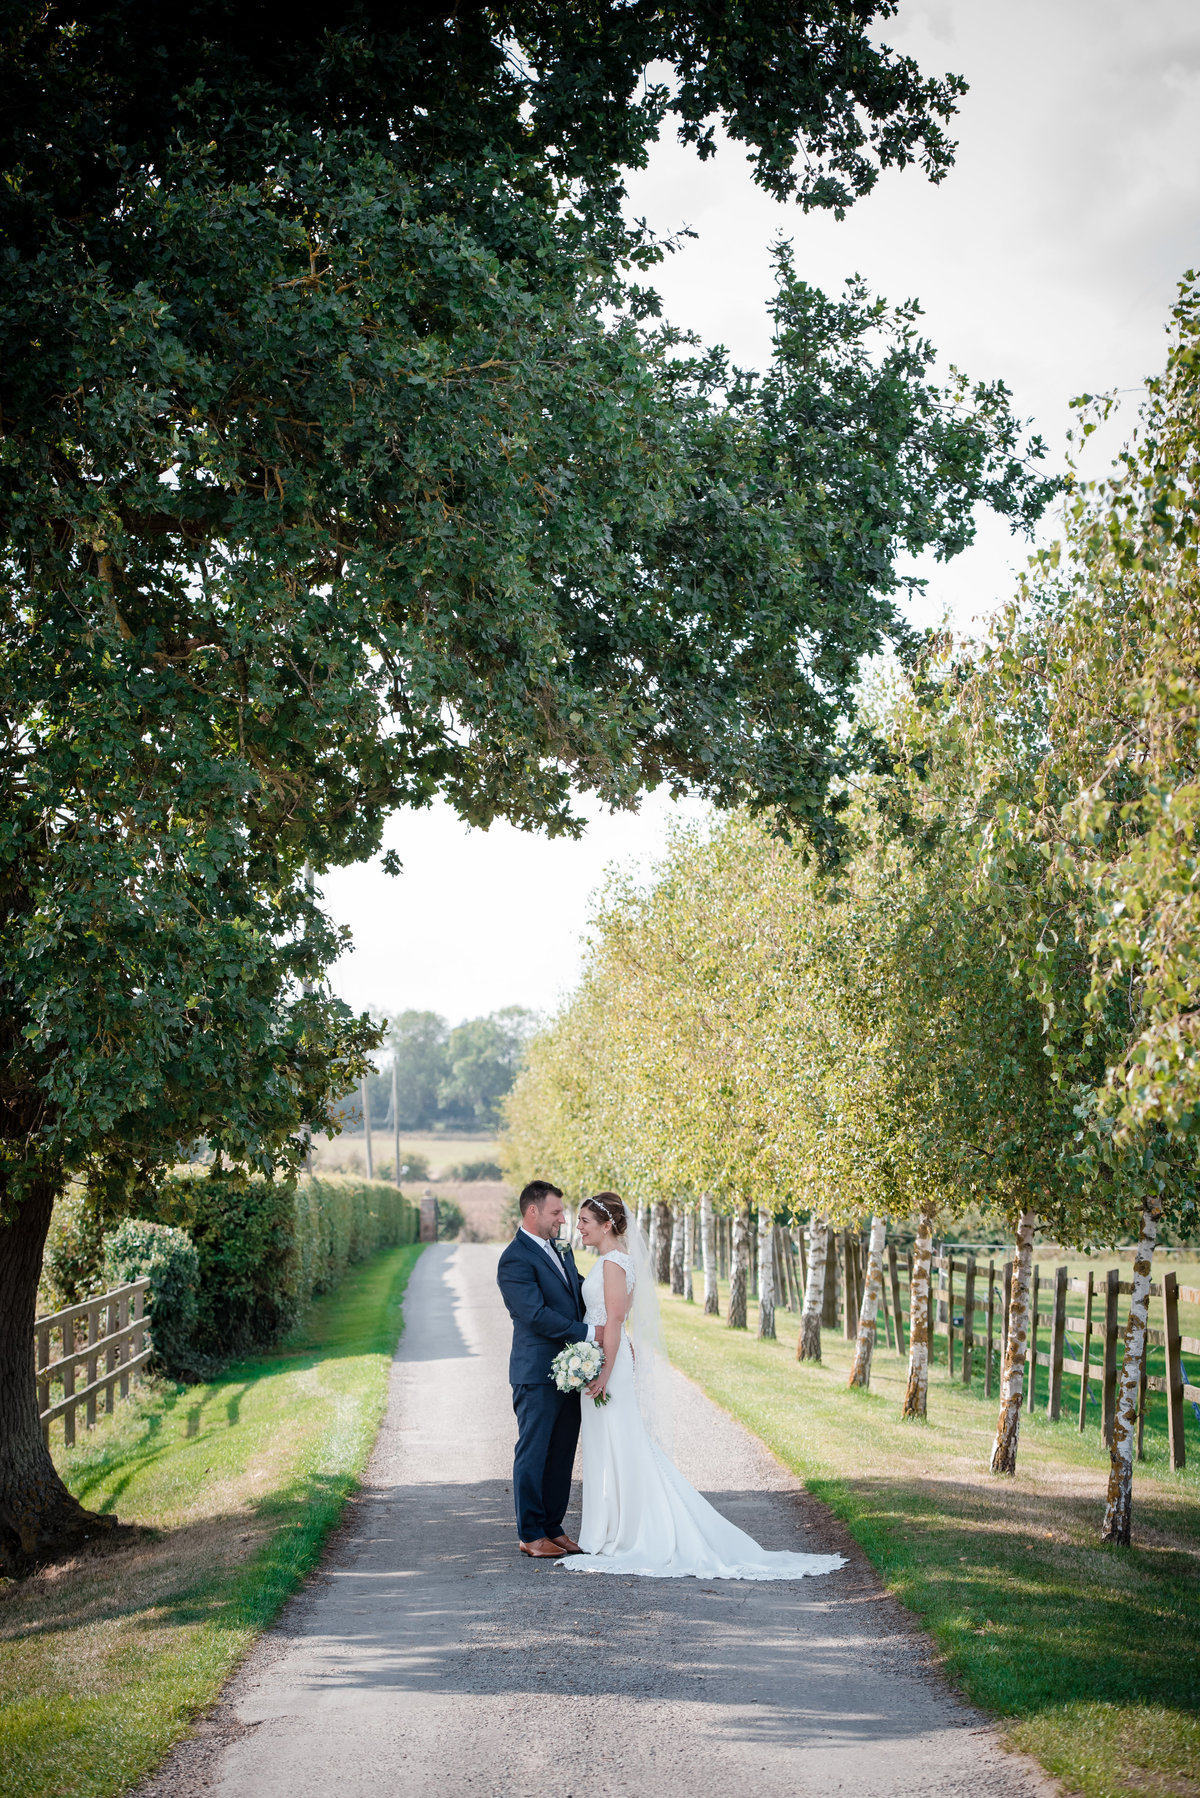 Stratton Court Barn wedding photography oxfordshire